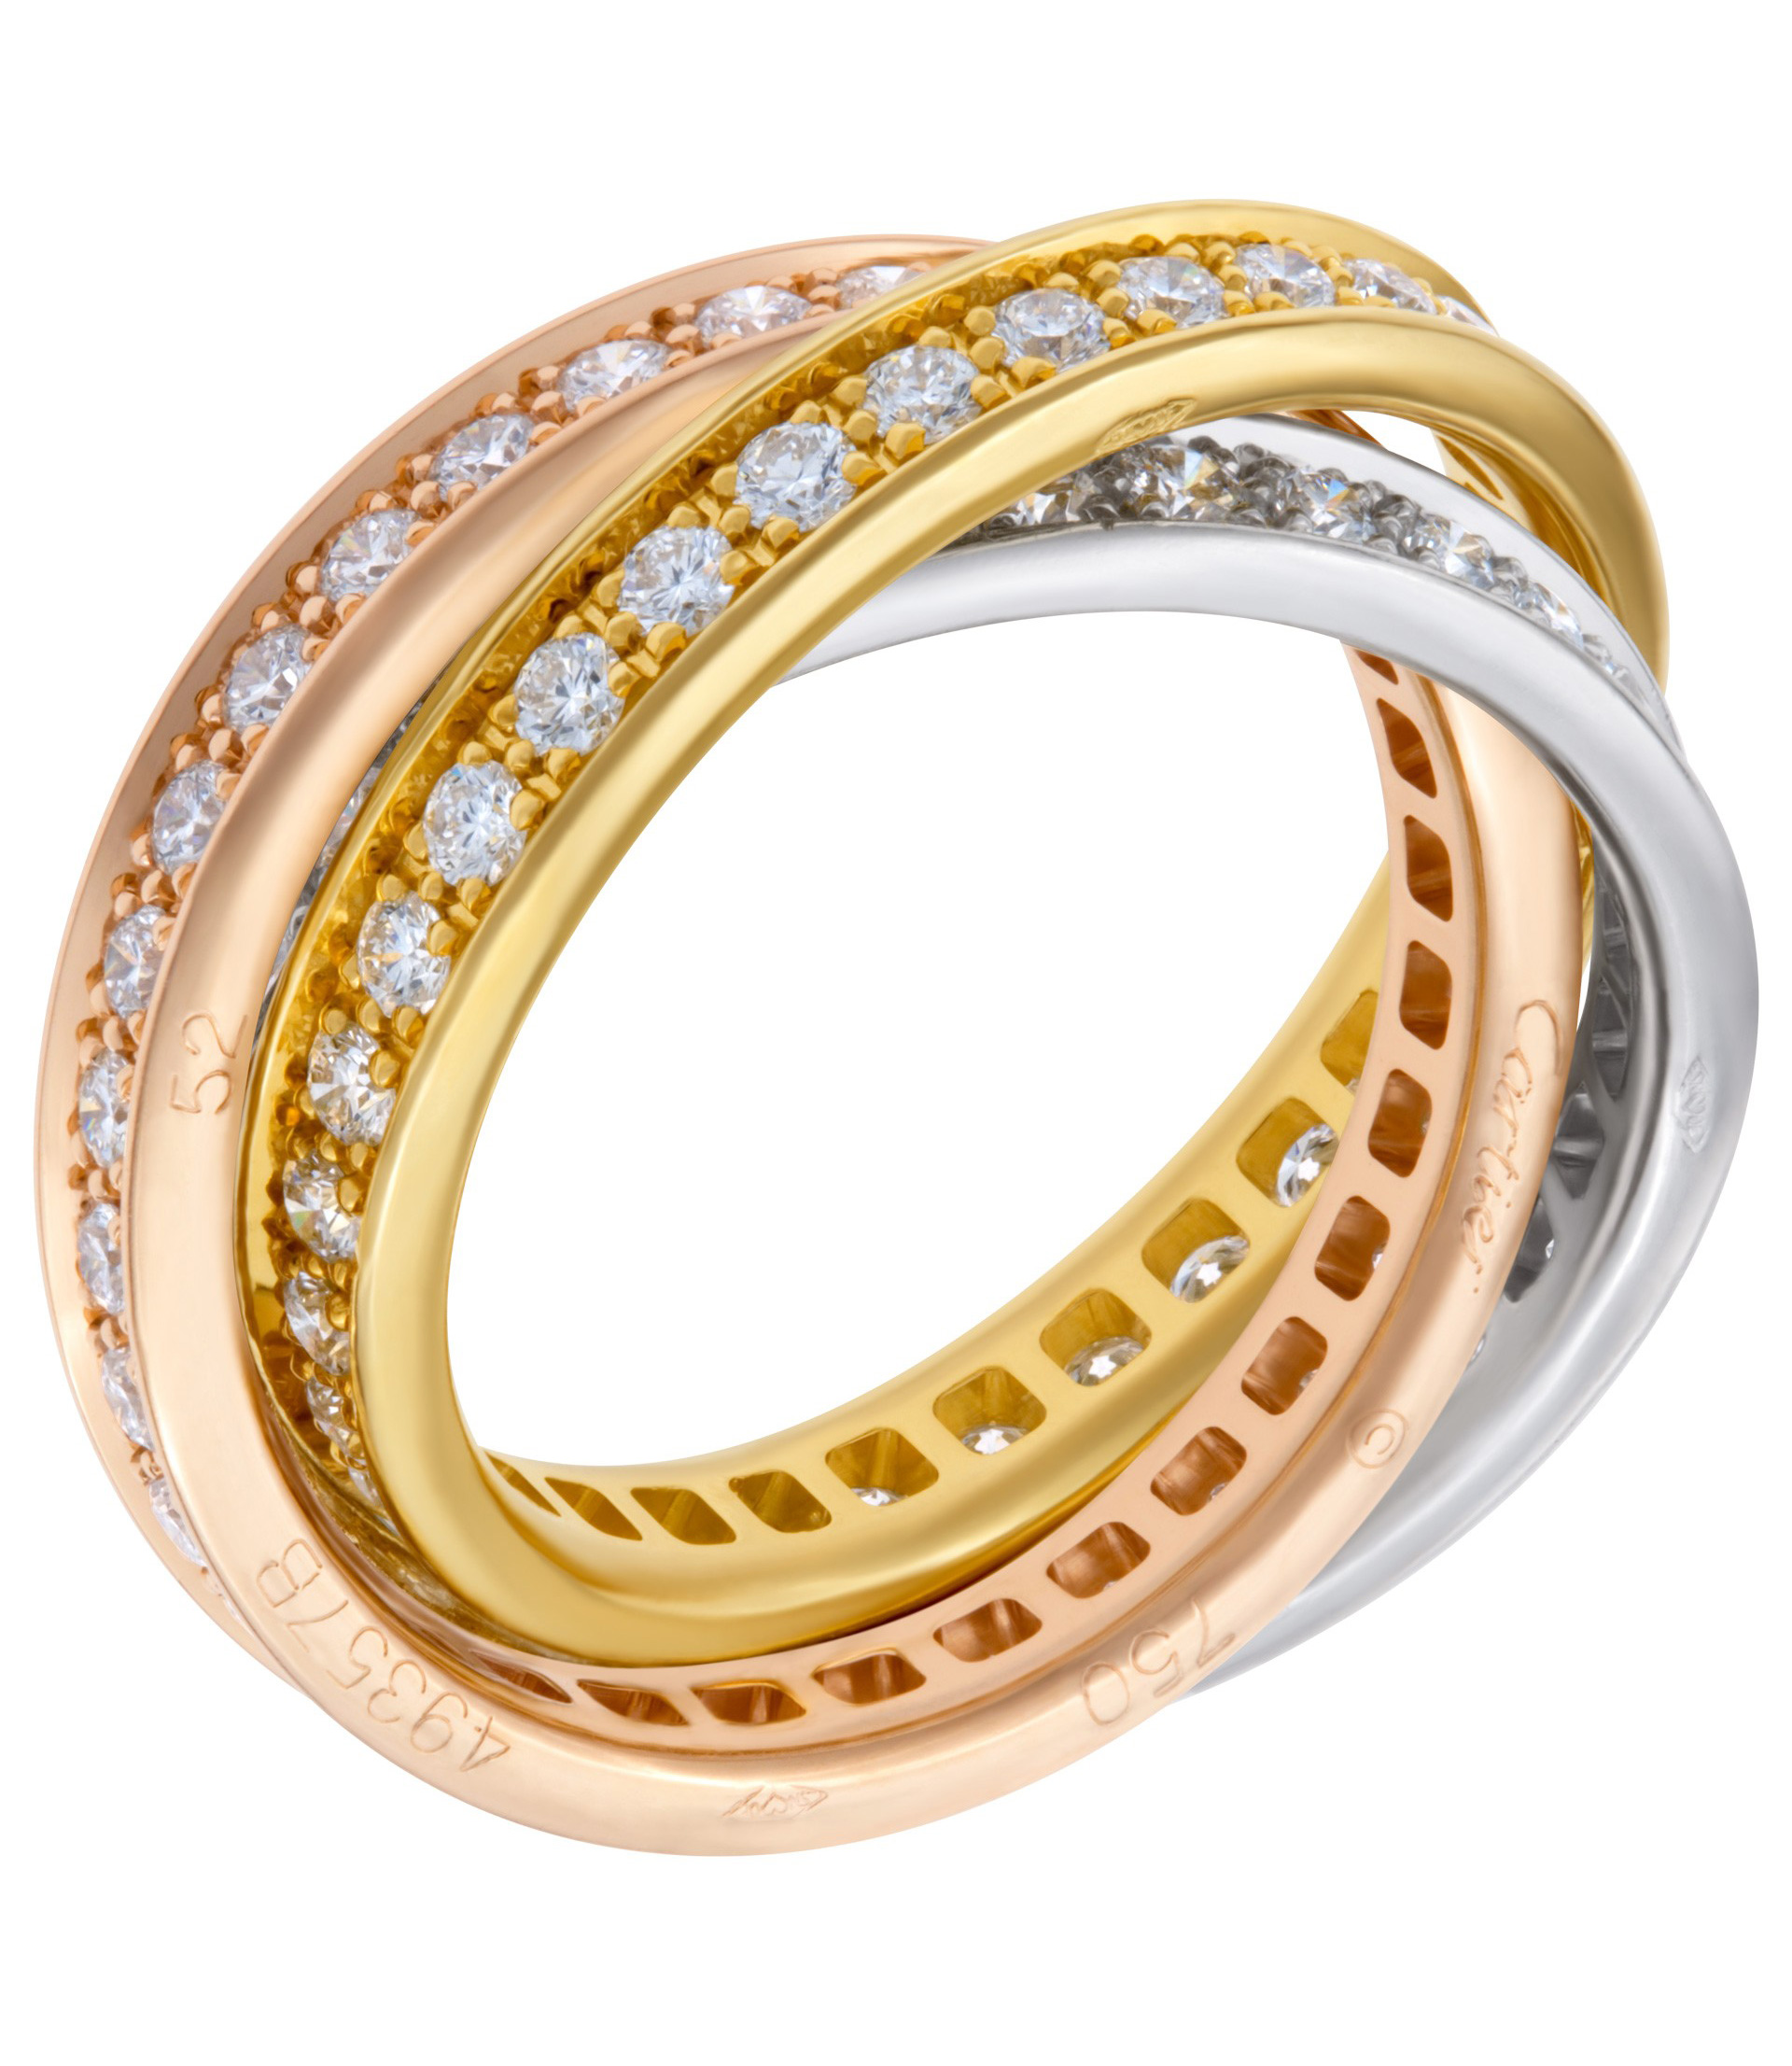 jewellery embella ring products trinity trinityring rings